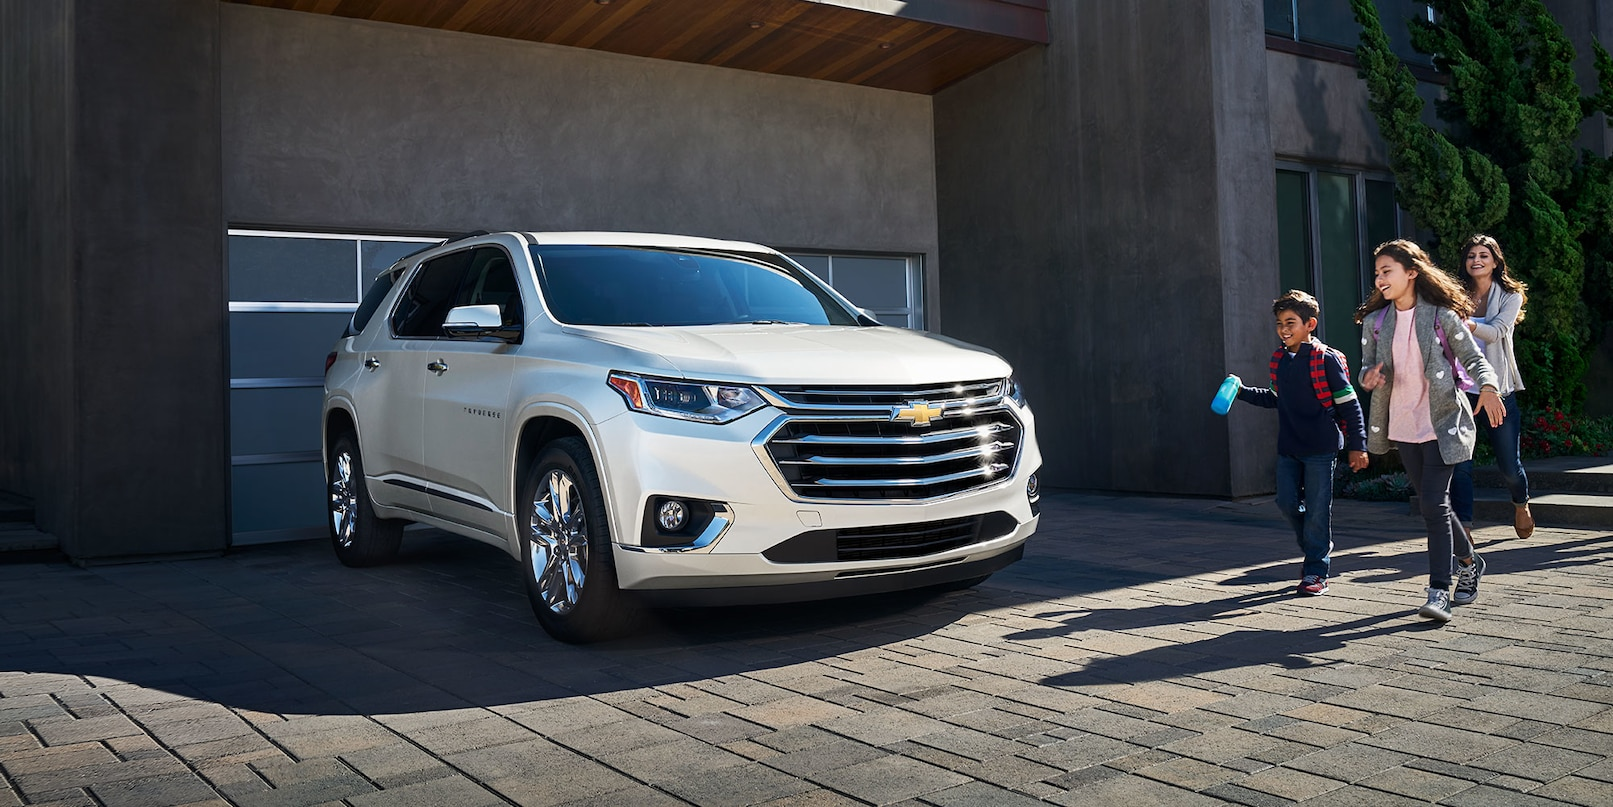 2019 Chevrolet Traverse for Sale near Merrillville, IN